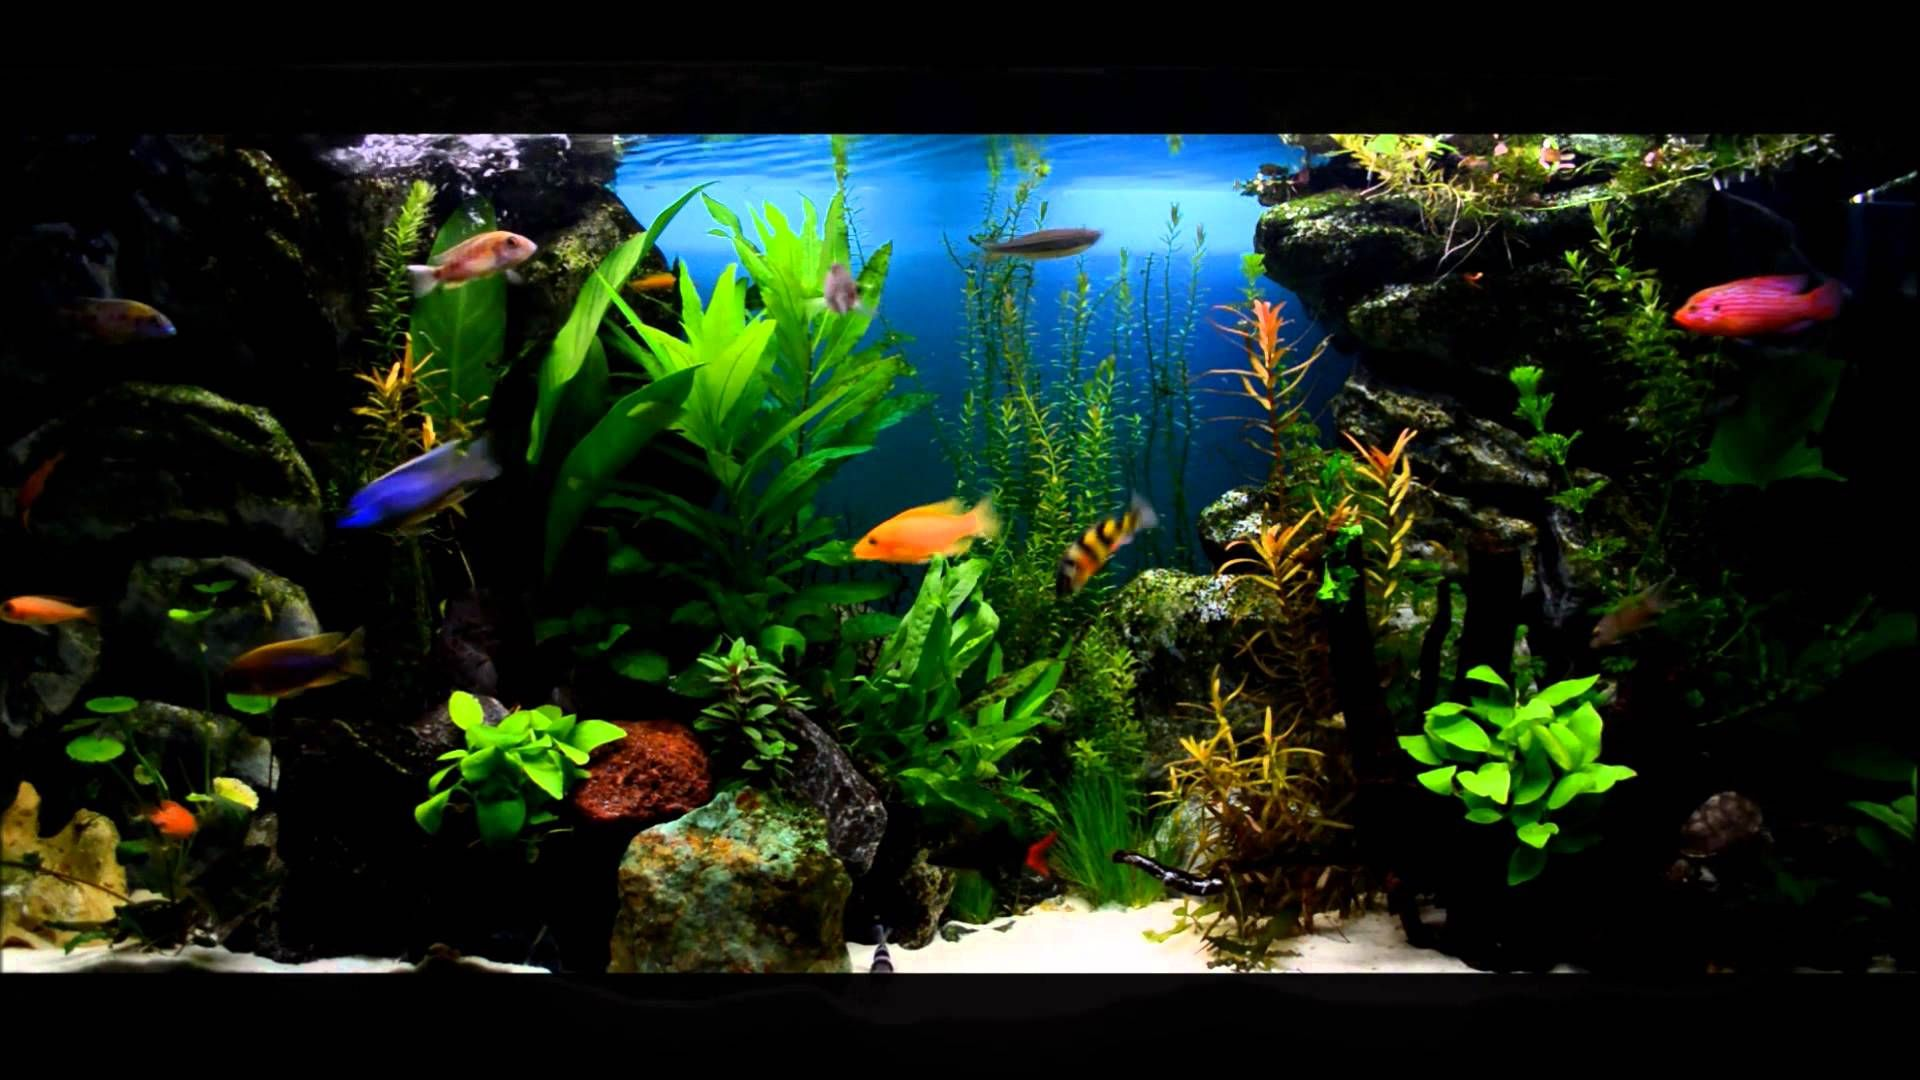 Colorful lake tanganyika cichlids tank setup freshwater for Freshwater fish tank setup